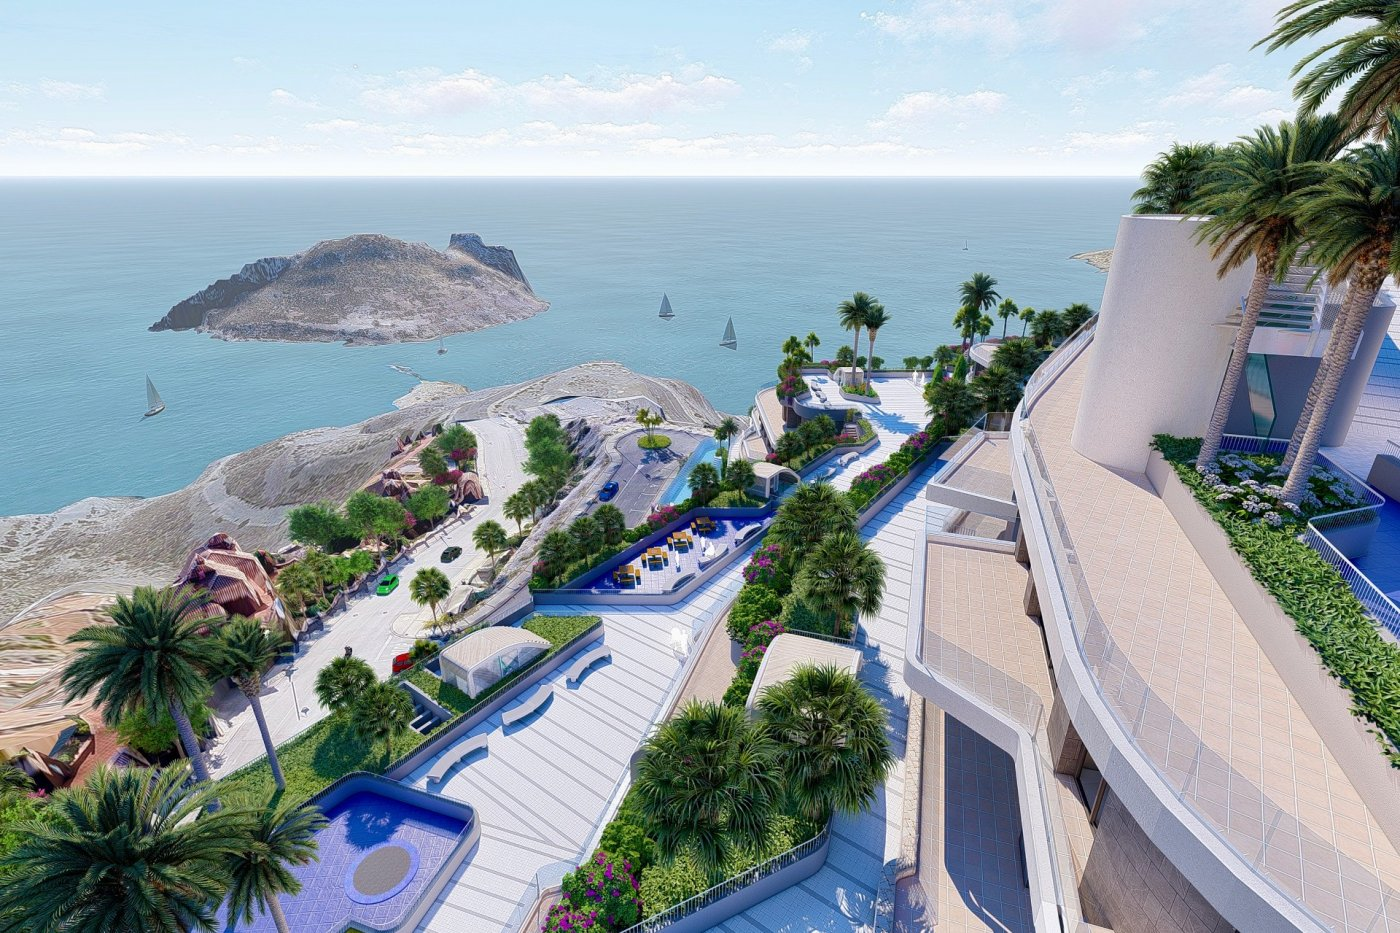 Gallery Image 18 of Luxury 1 bed penthouse with massive 59 m2 solarium and exceptional views